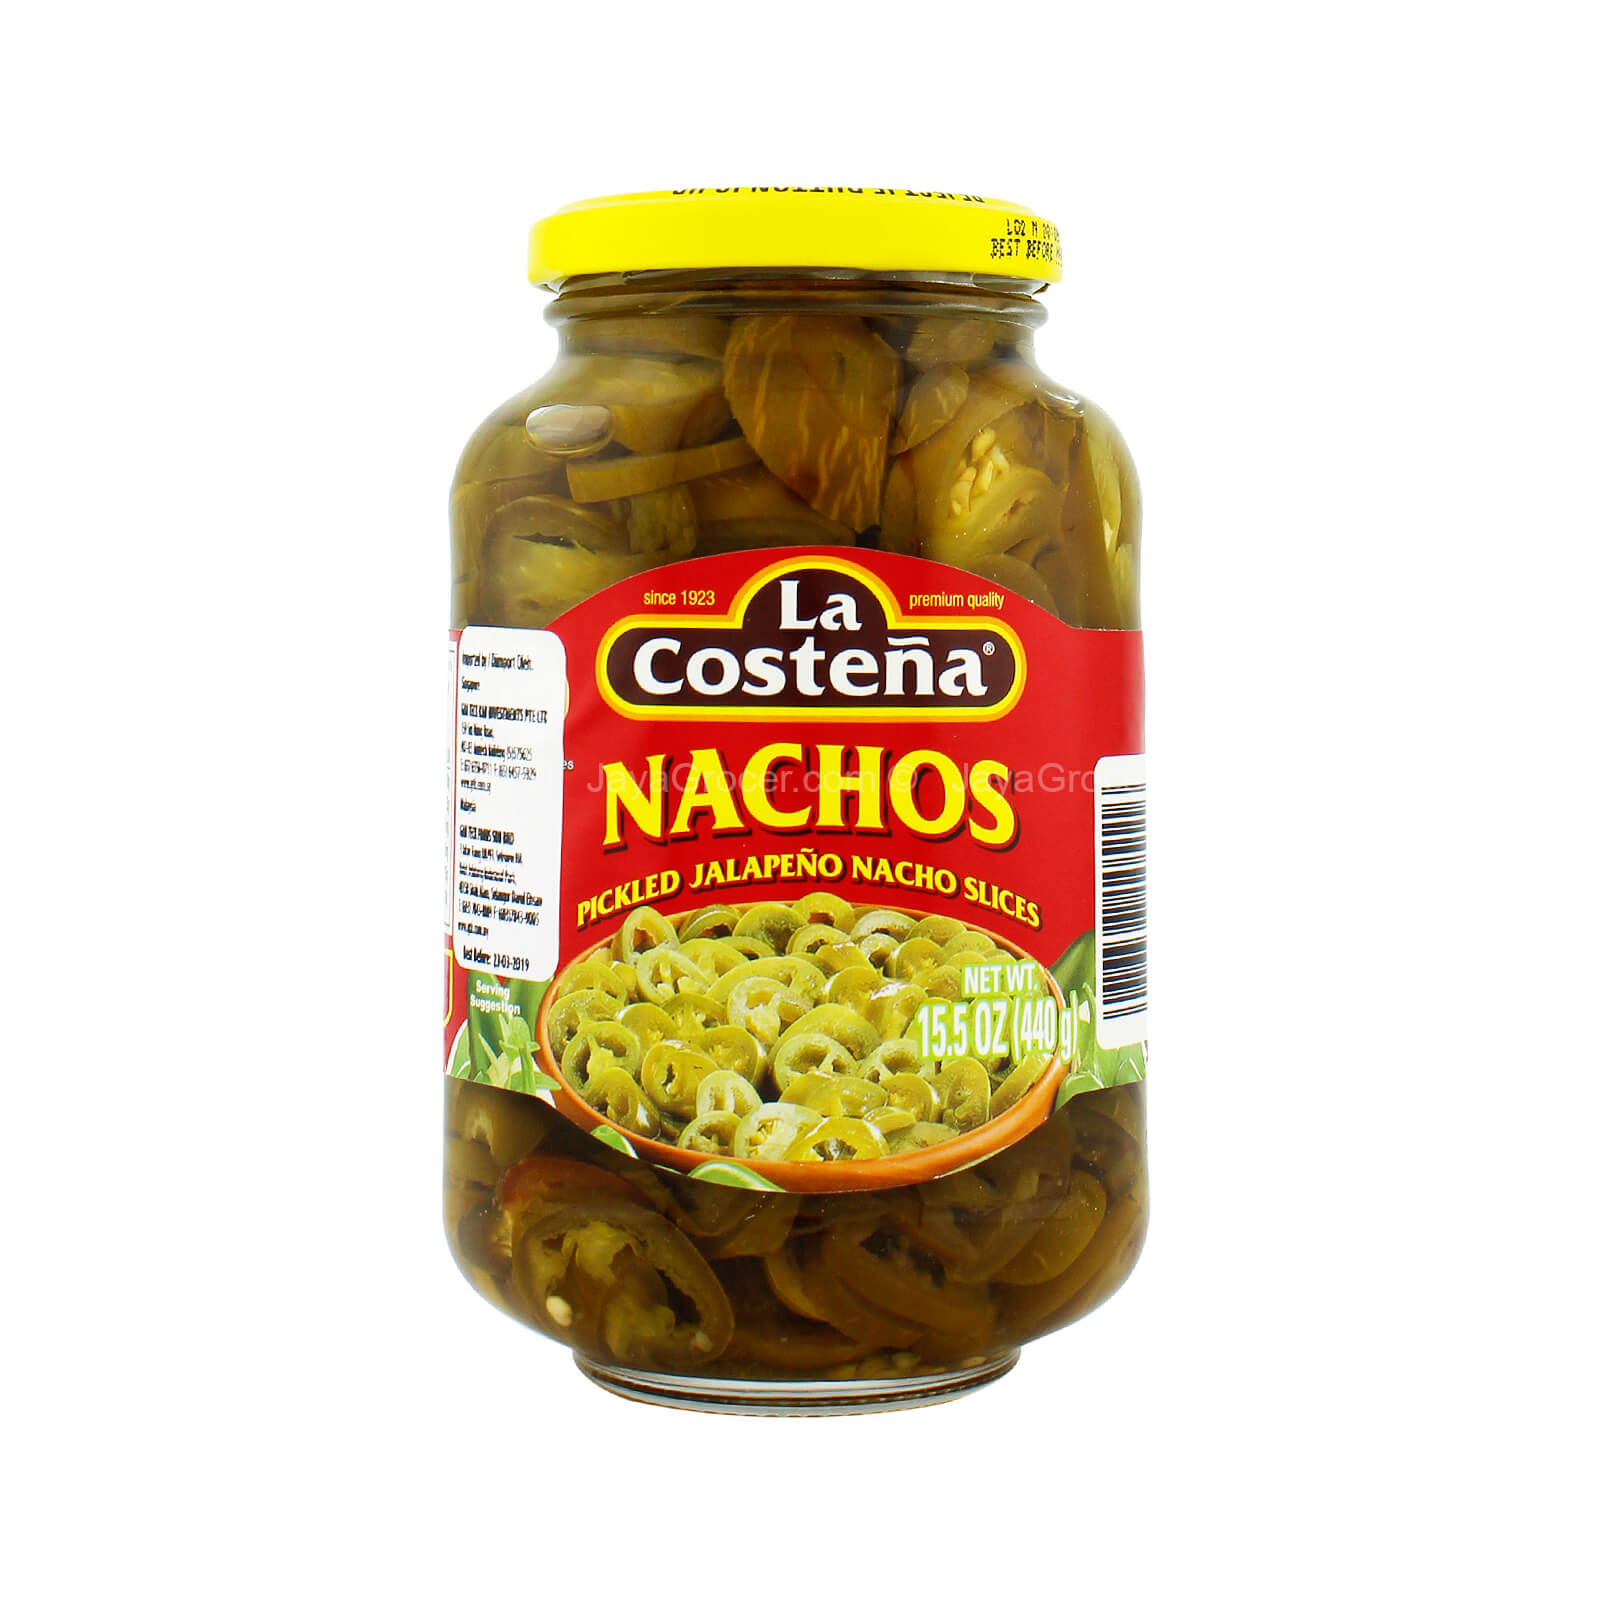 La Costena Nachos Pickled Jalapeno Nacho Slices